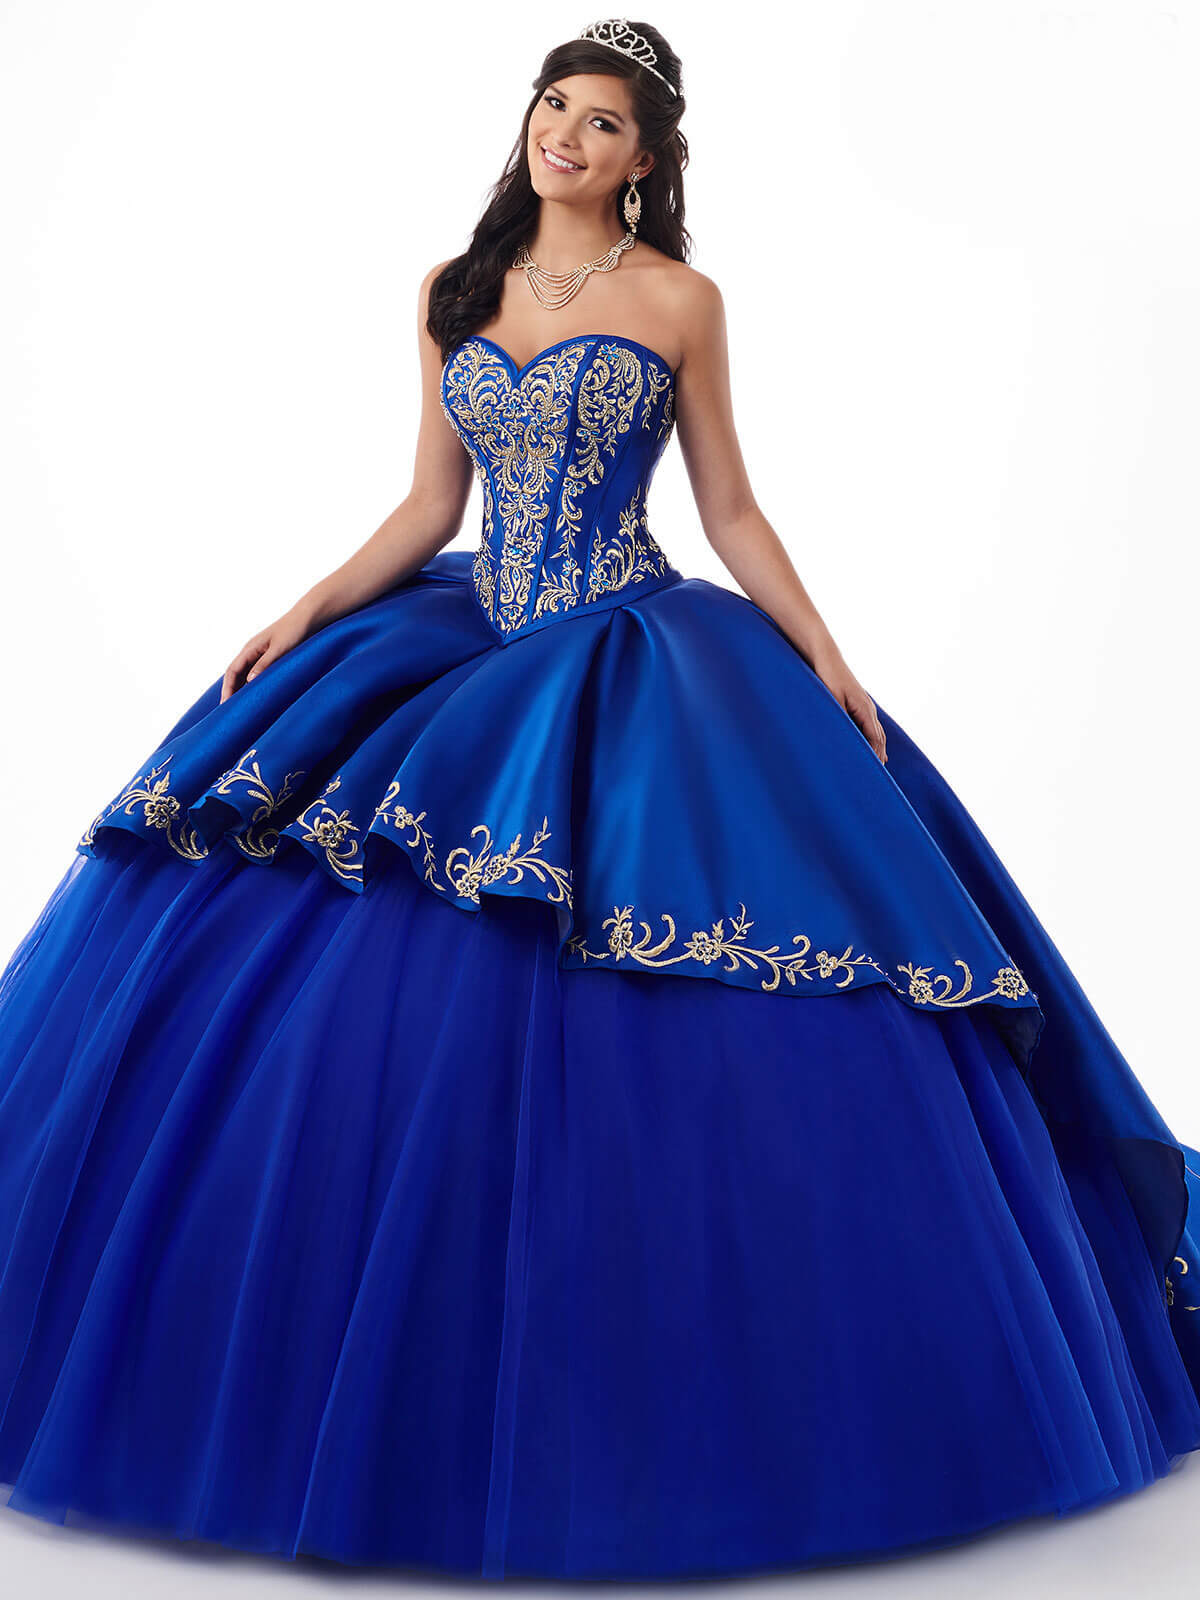 Mary's Quinceanera Top Stylish Ball Gown Dresses Buy In US